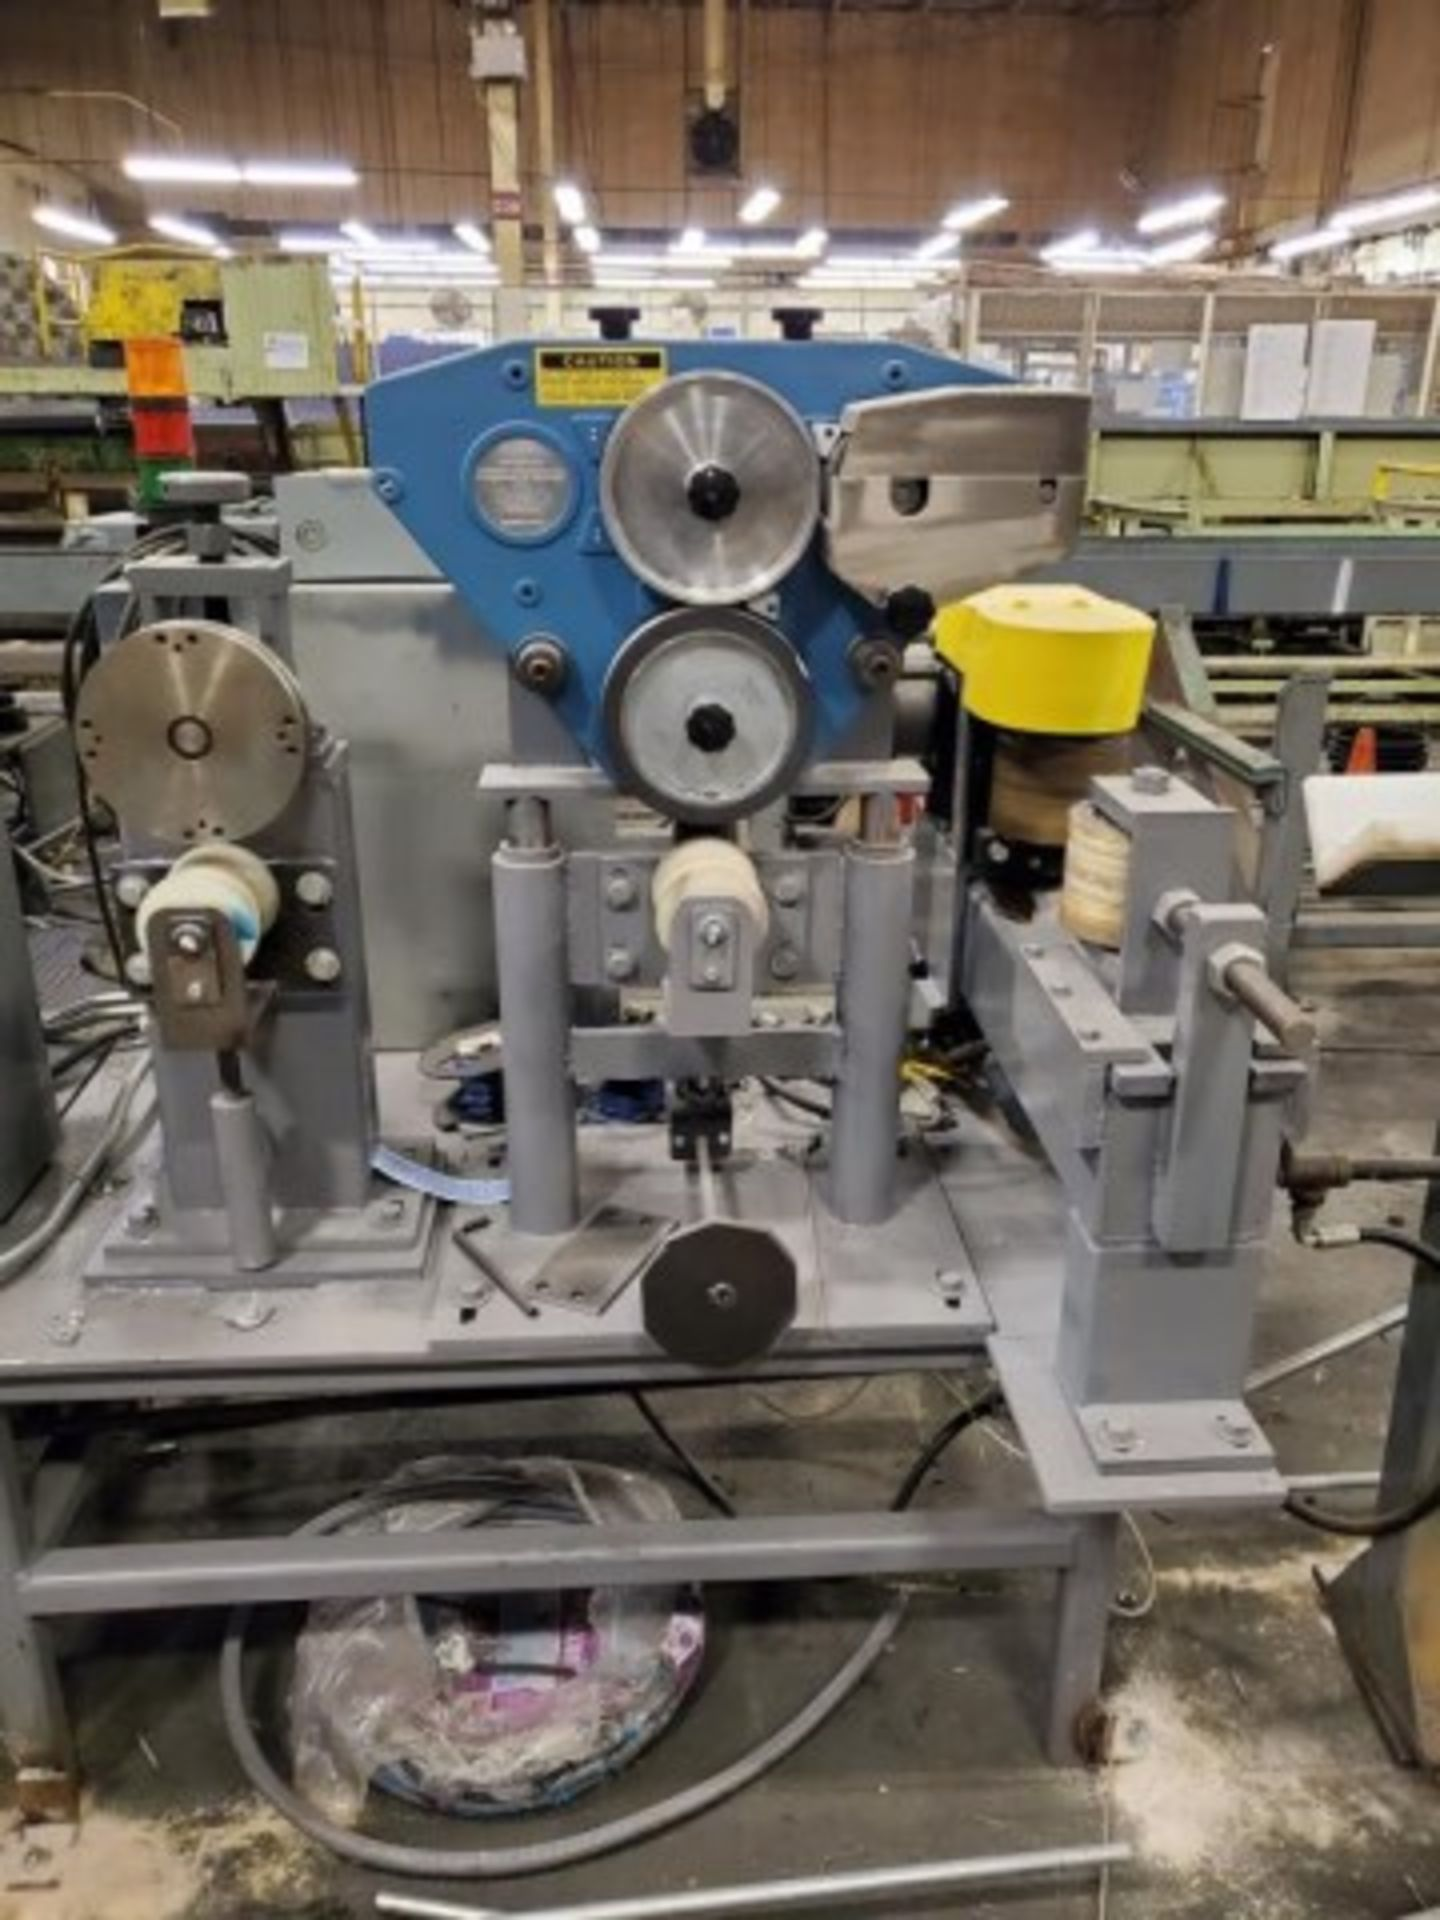 Lot 276 - Eddy Current Test and Marking Line